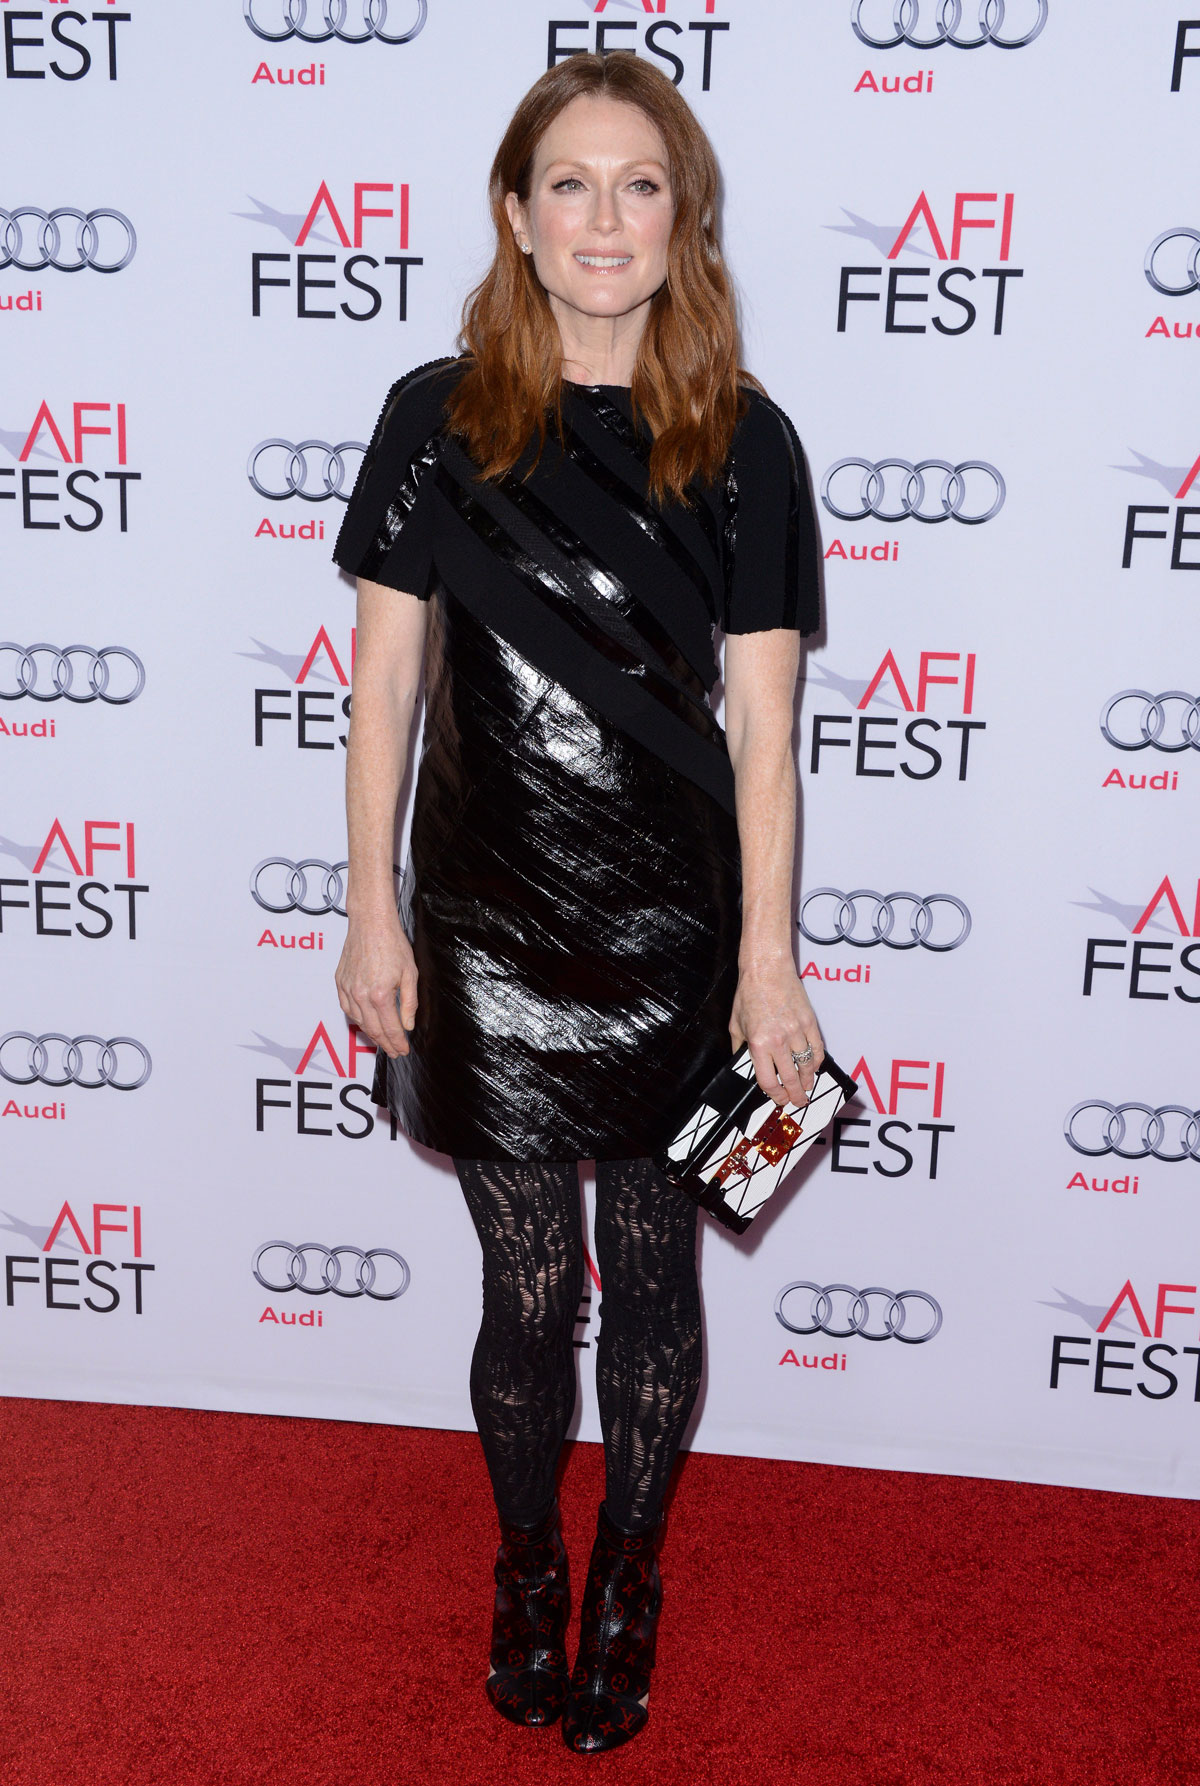 Julianne Moore on the red carpet at the premiere of Still Alice